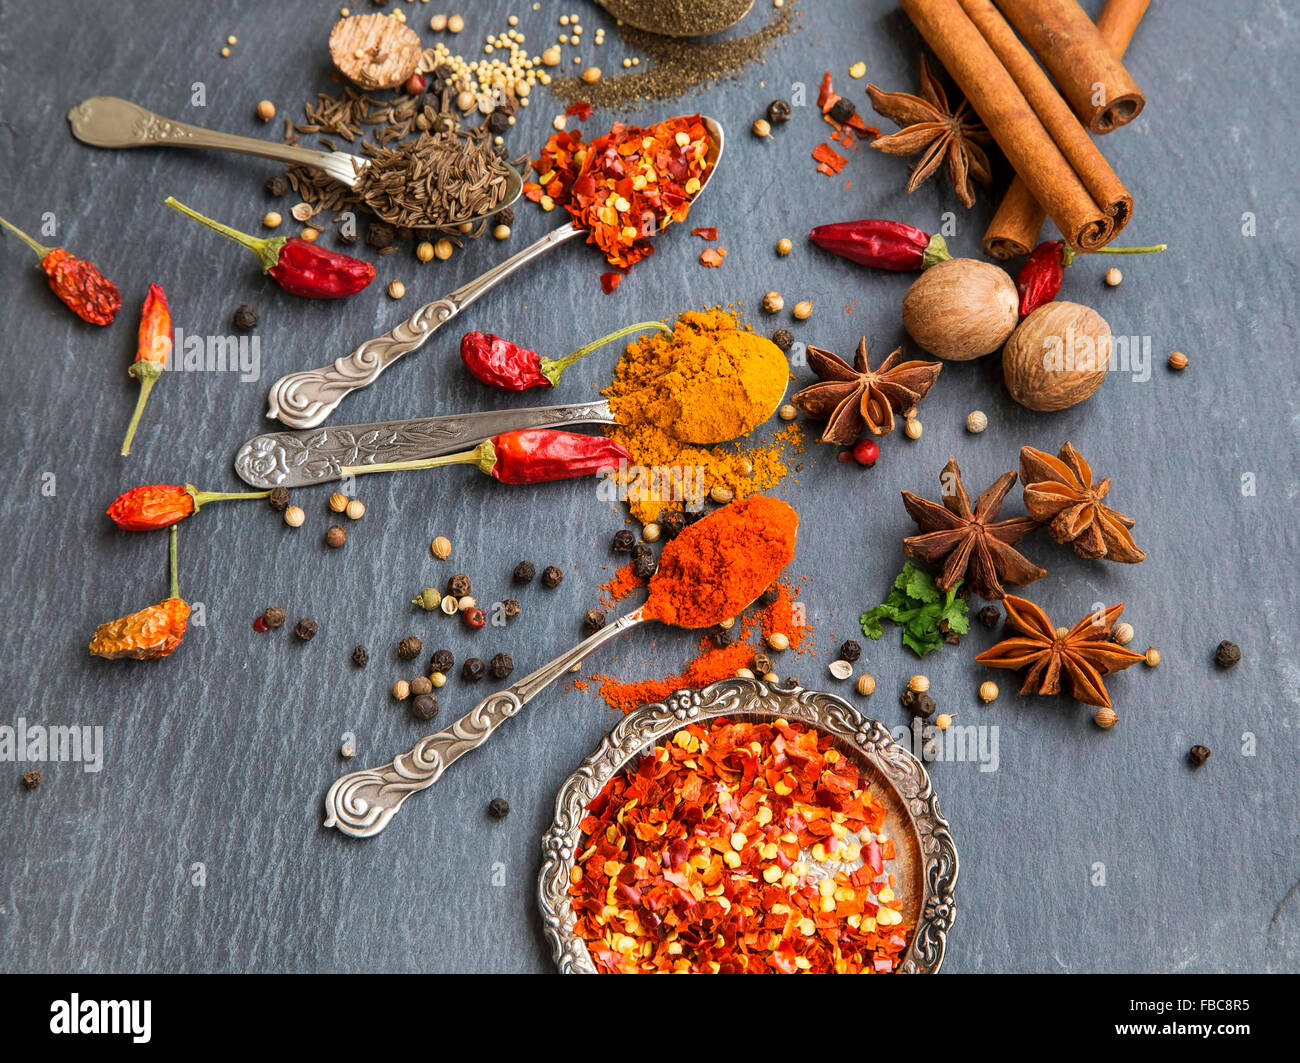 Aromatic spices with pepper and turmeric powders,cumin and coriander seeds, chili flakes , anise, nutmeg and cinnamon - Stock Image